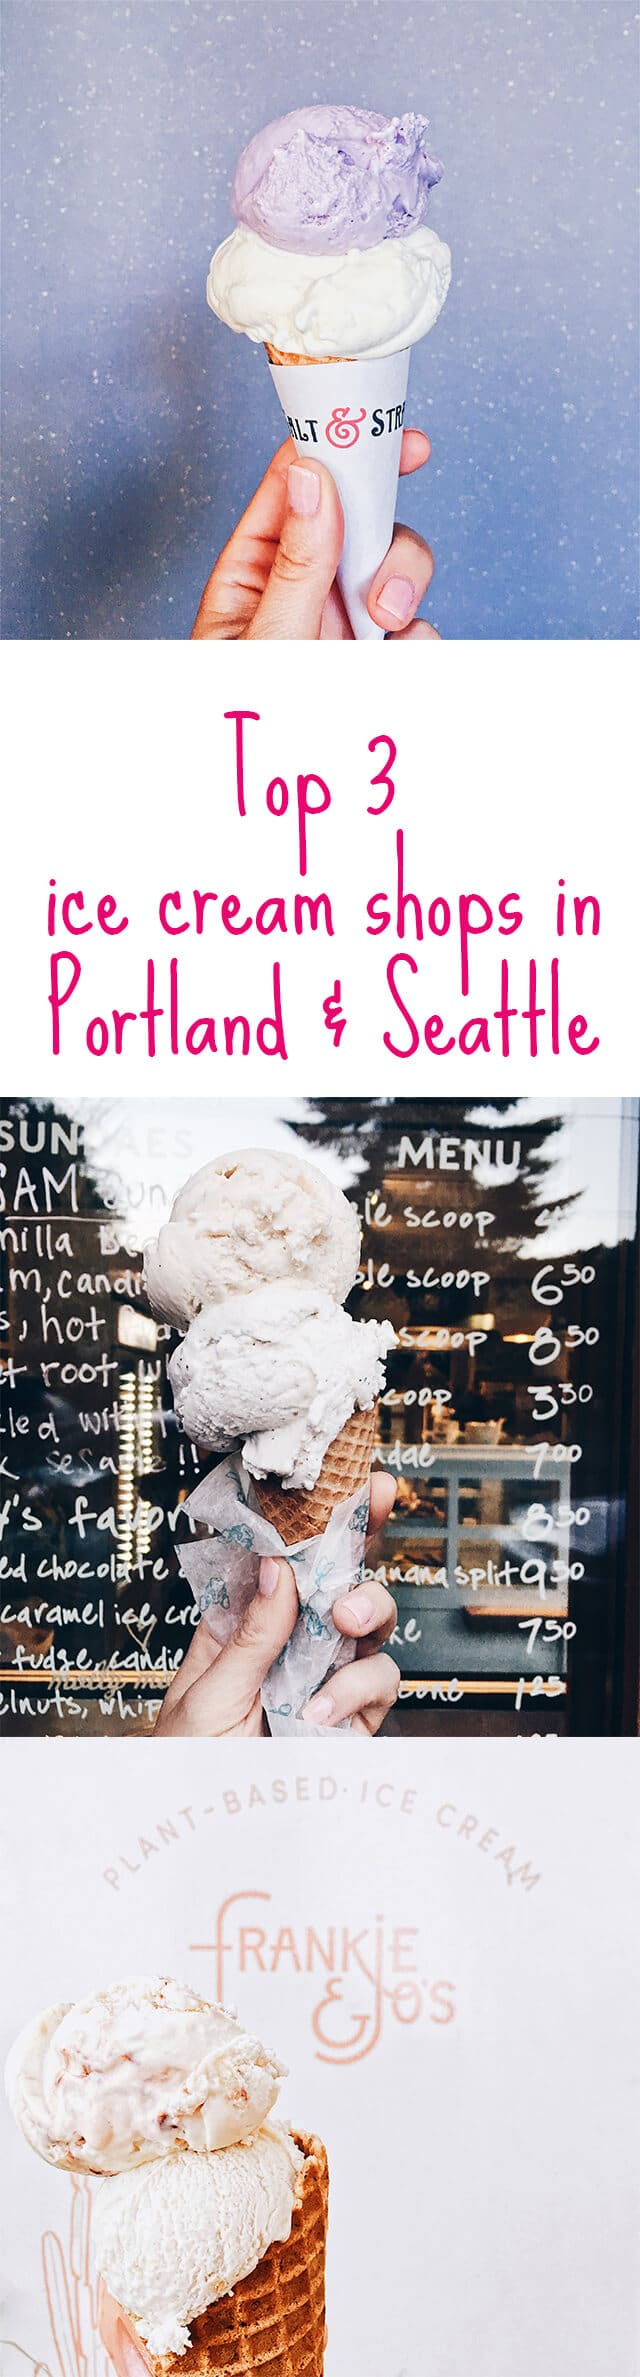 Top 3 ice cream shops in  Portland and Seattle - here's a rundown of the best ice cream in  Portland and Seattle